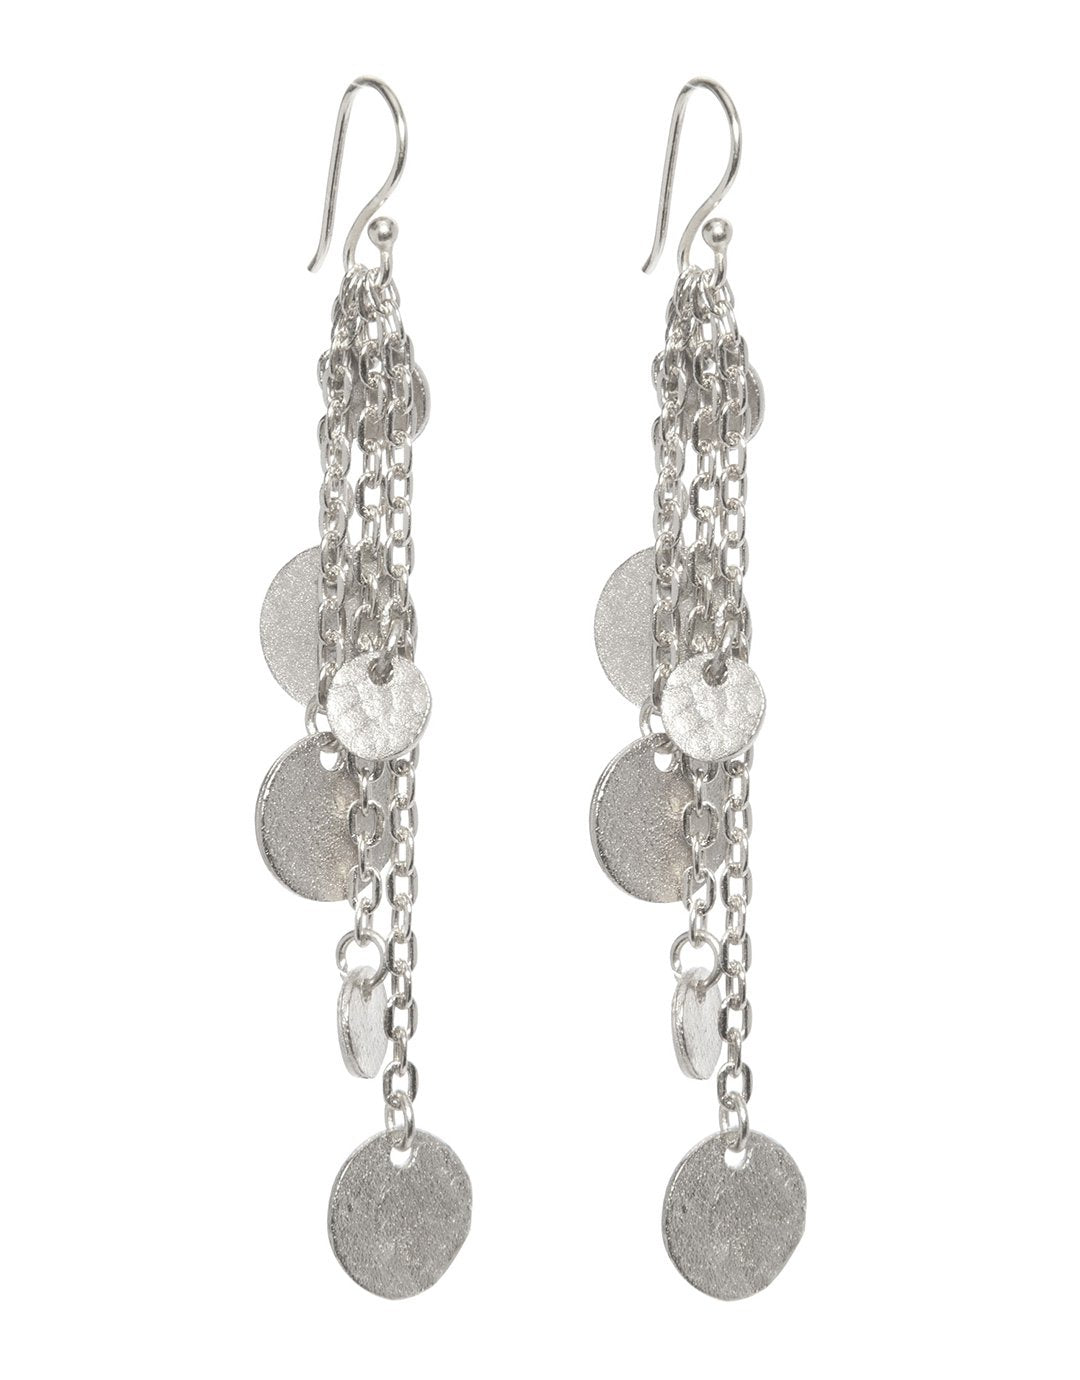 Image of Ashiana Alena Earrings - Silver